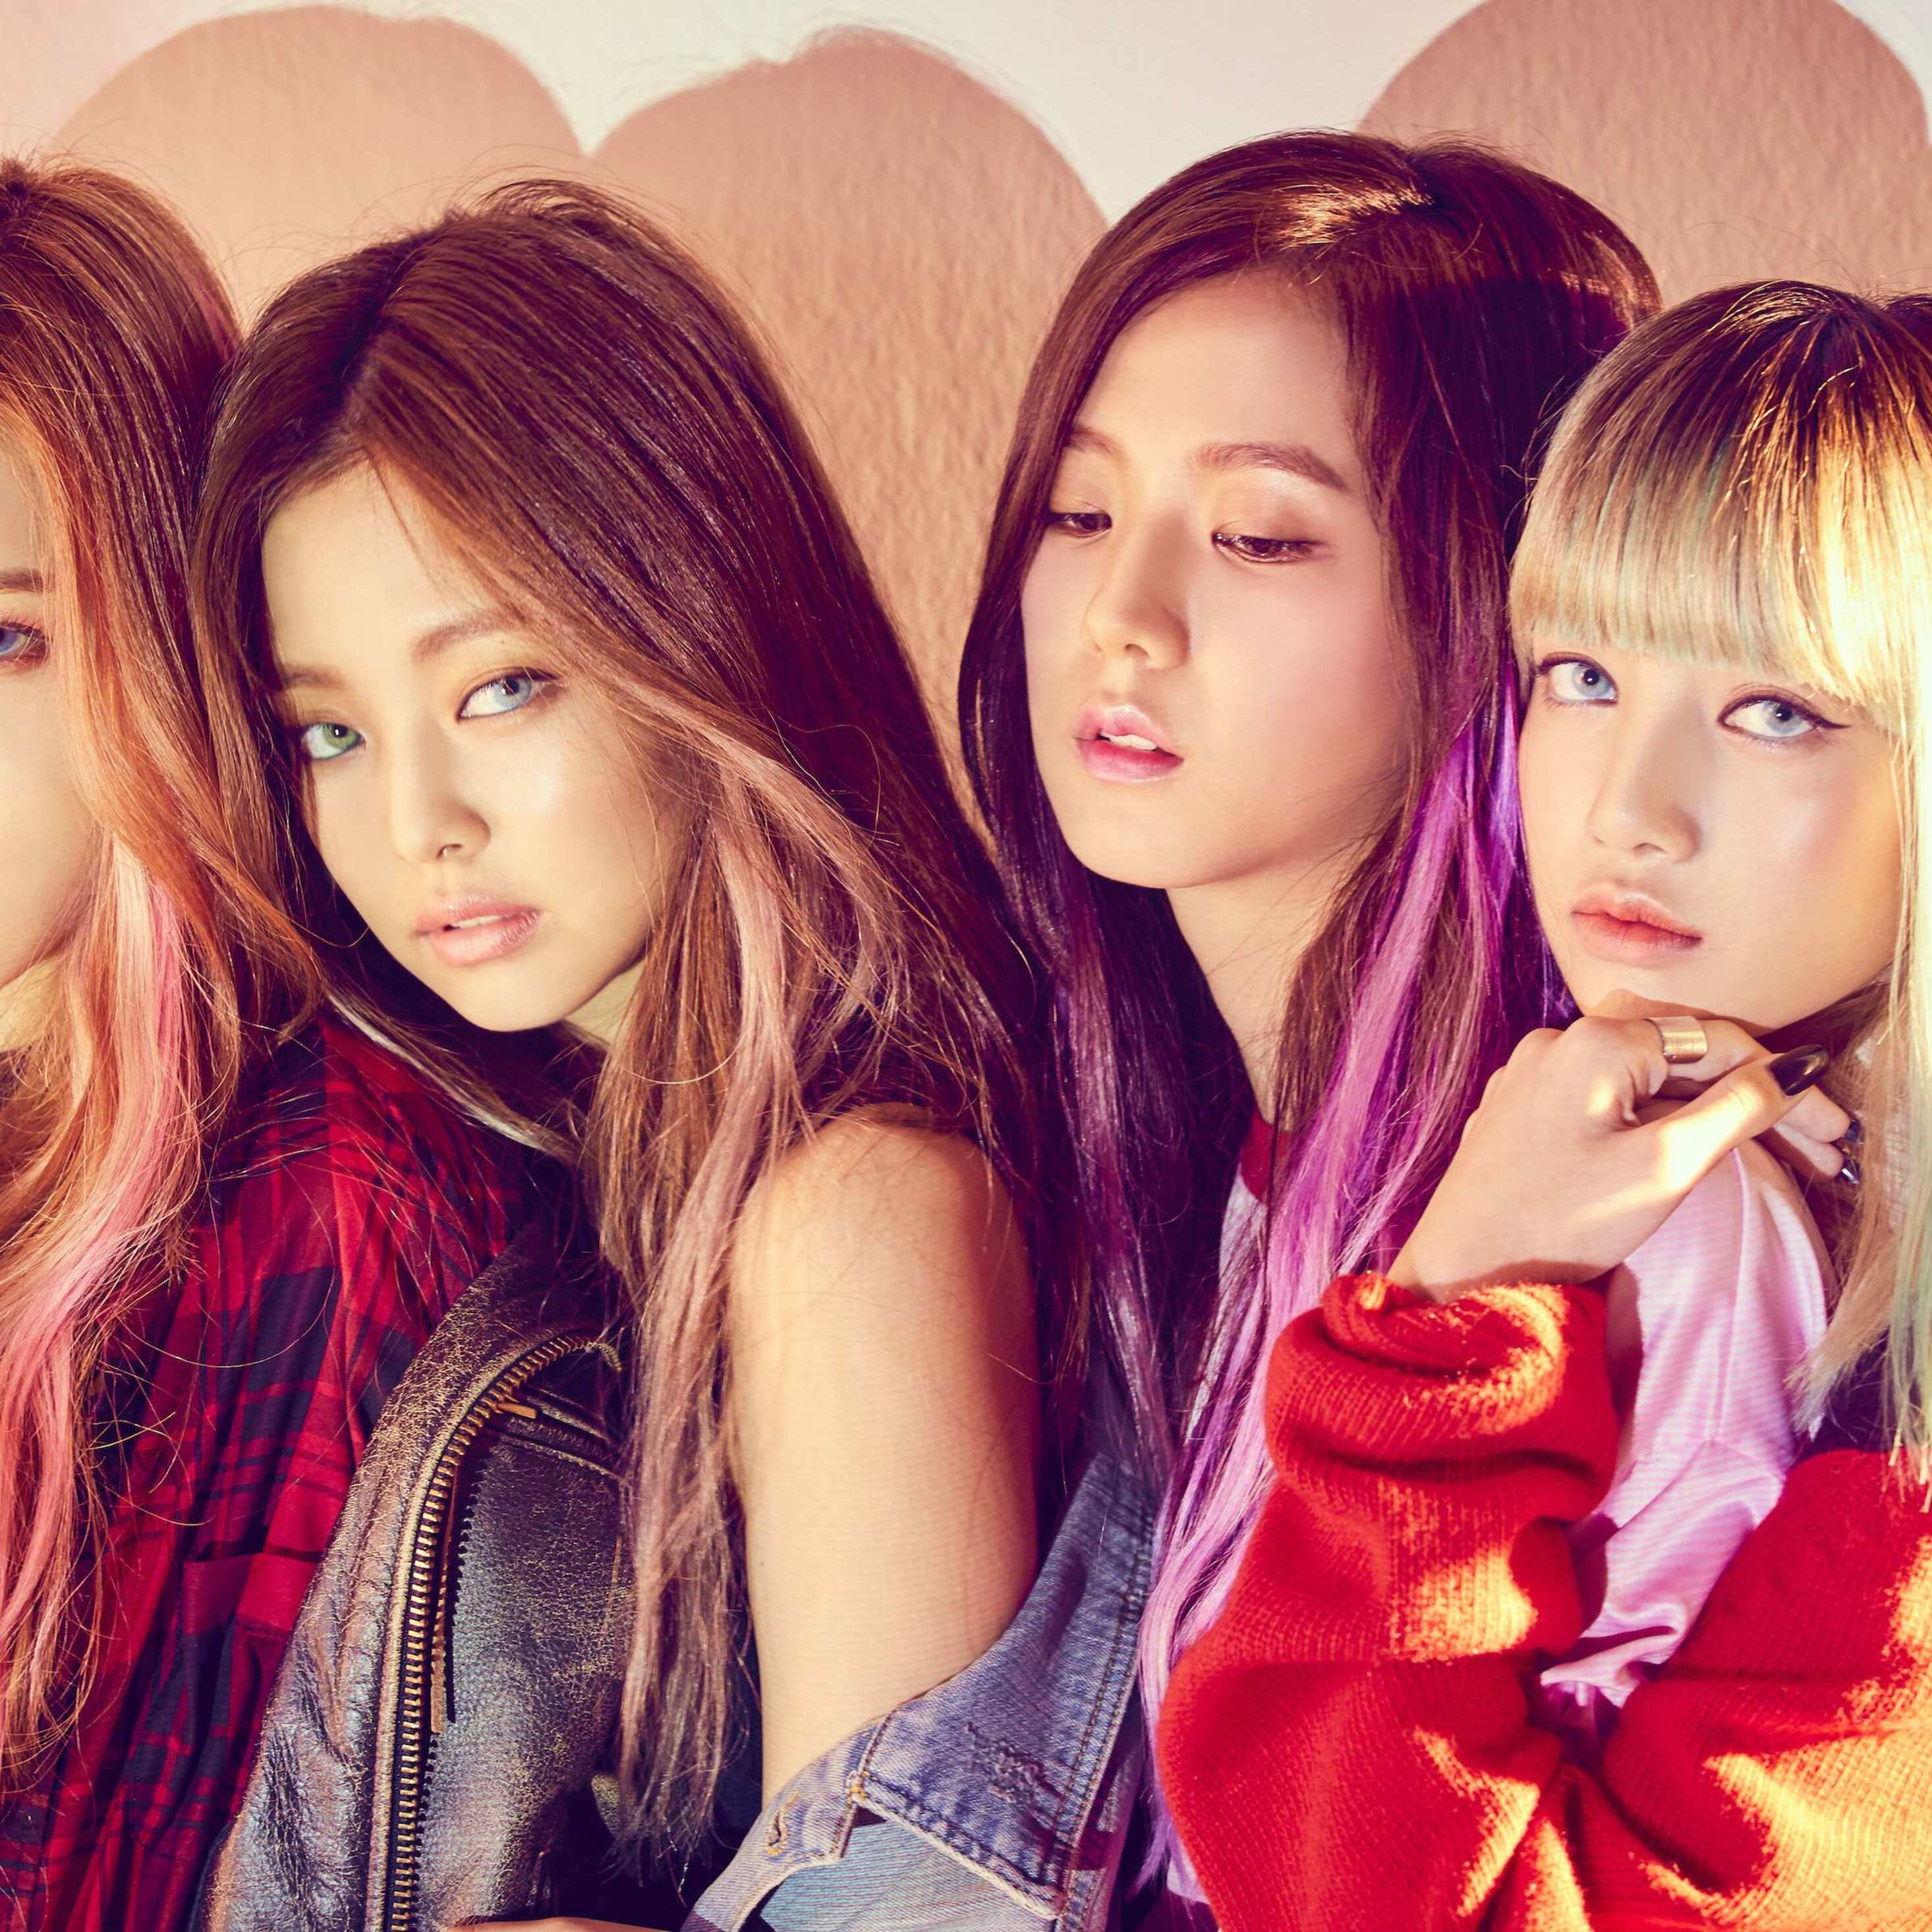 2932x2932 Blackpink Ipad Pro Retina Display Hd 4k Wallpapers Images Backgrounds Photos And Pictures